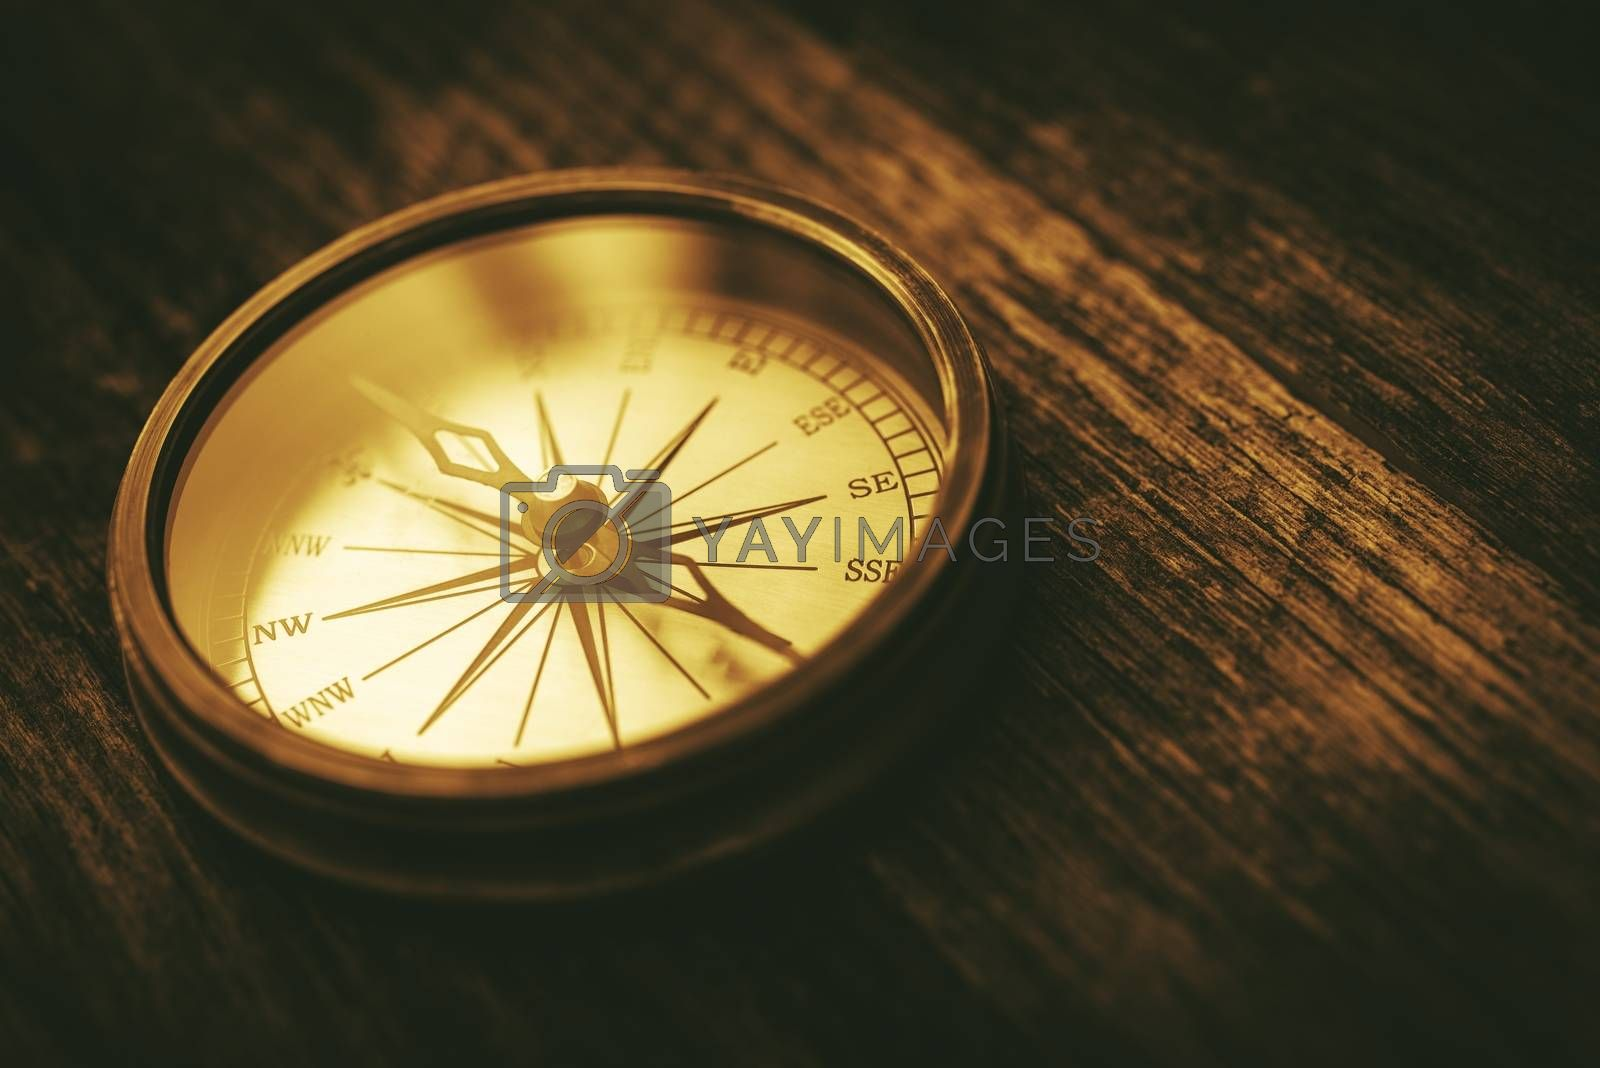 Vintage Navigation Technology. Old Metallic Compass Device on Aged Wood Boards.